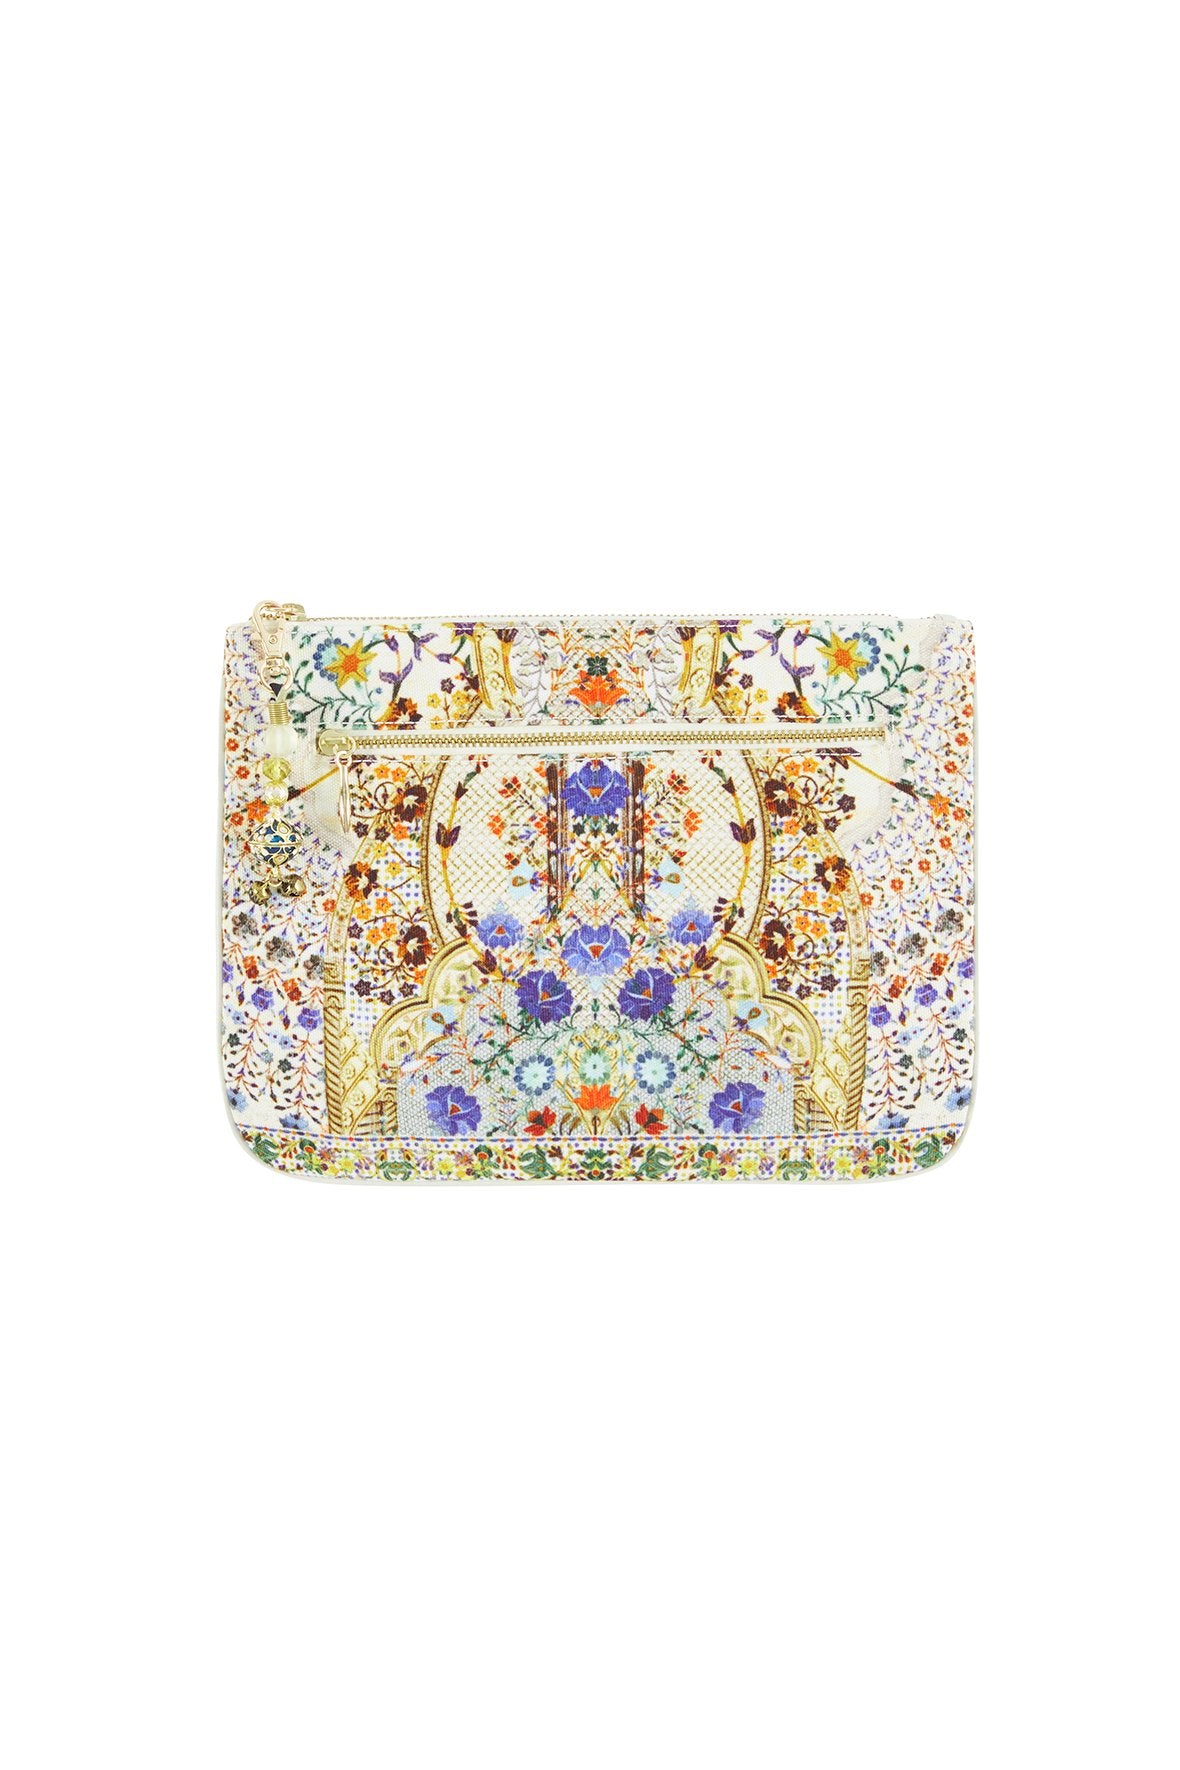 THE BUTTERFLY EFFECT SMALL CANVAS CLUTCH